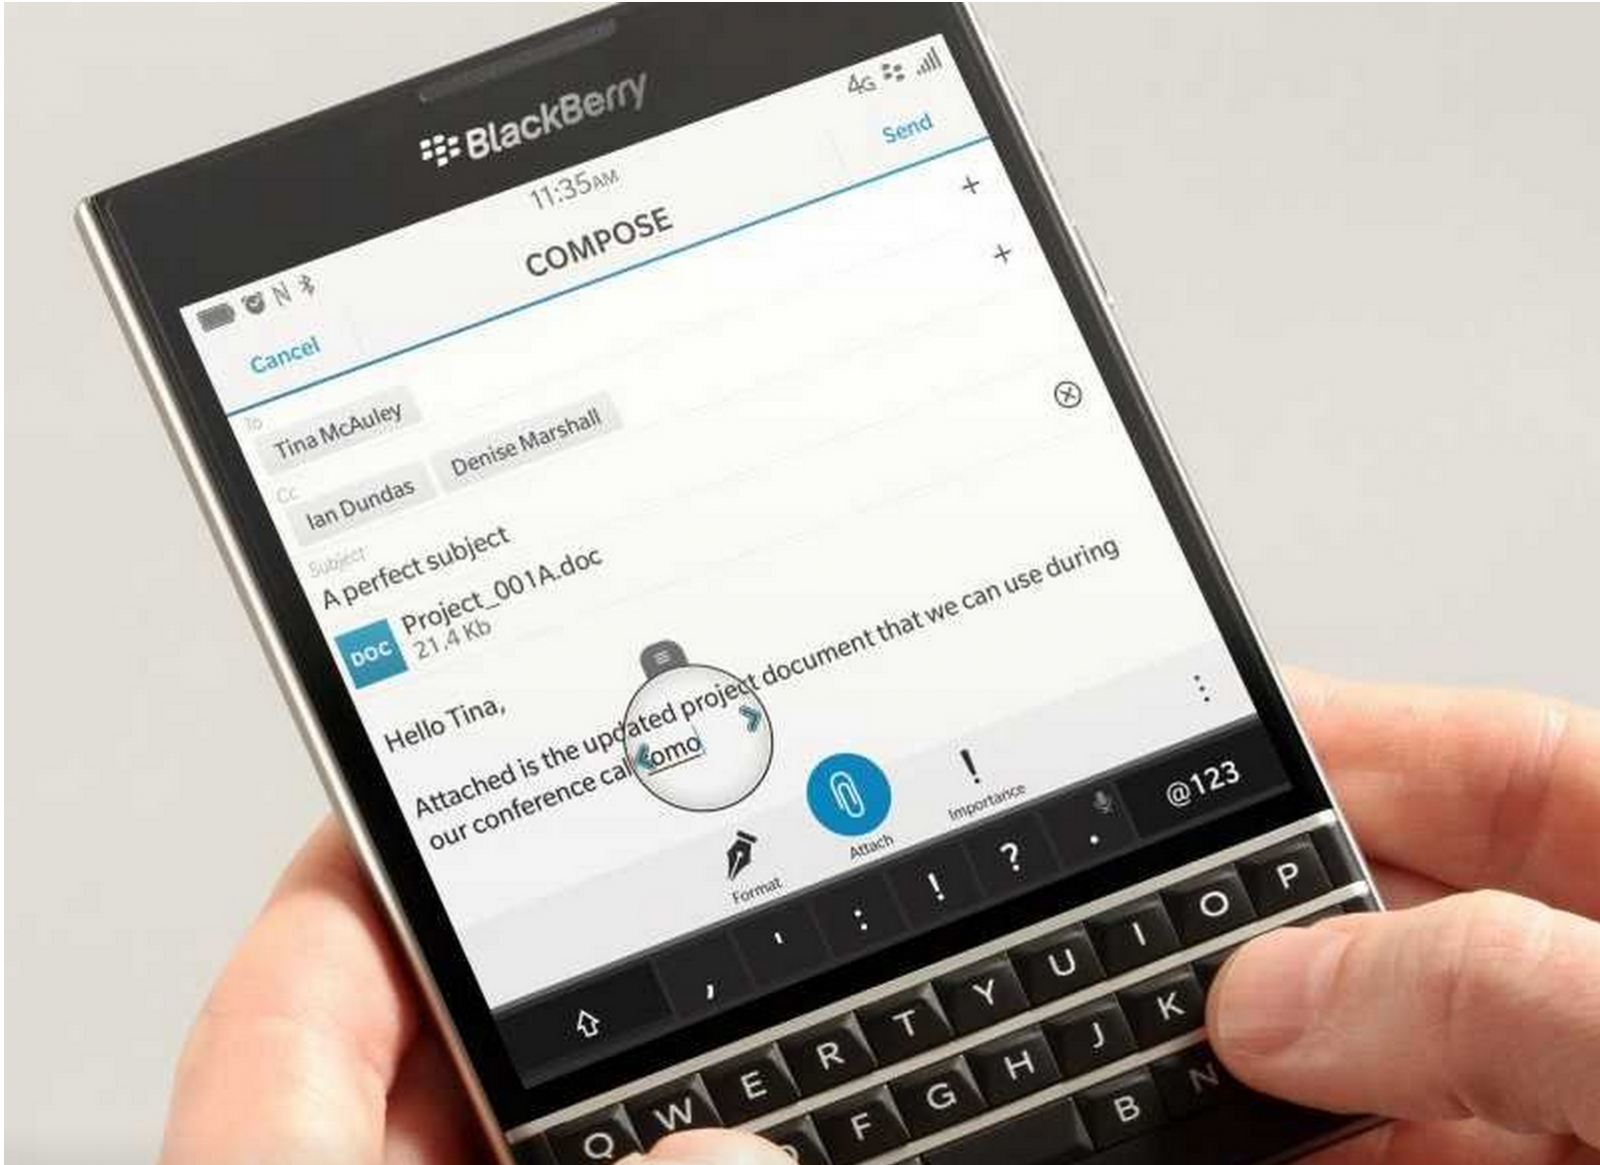 Blackberry 10.3.2 OS update